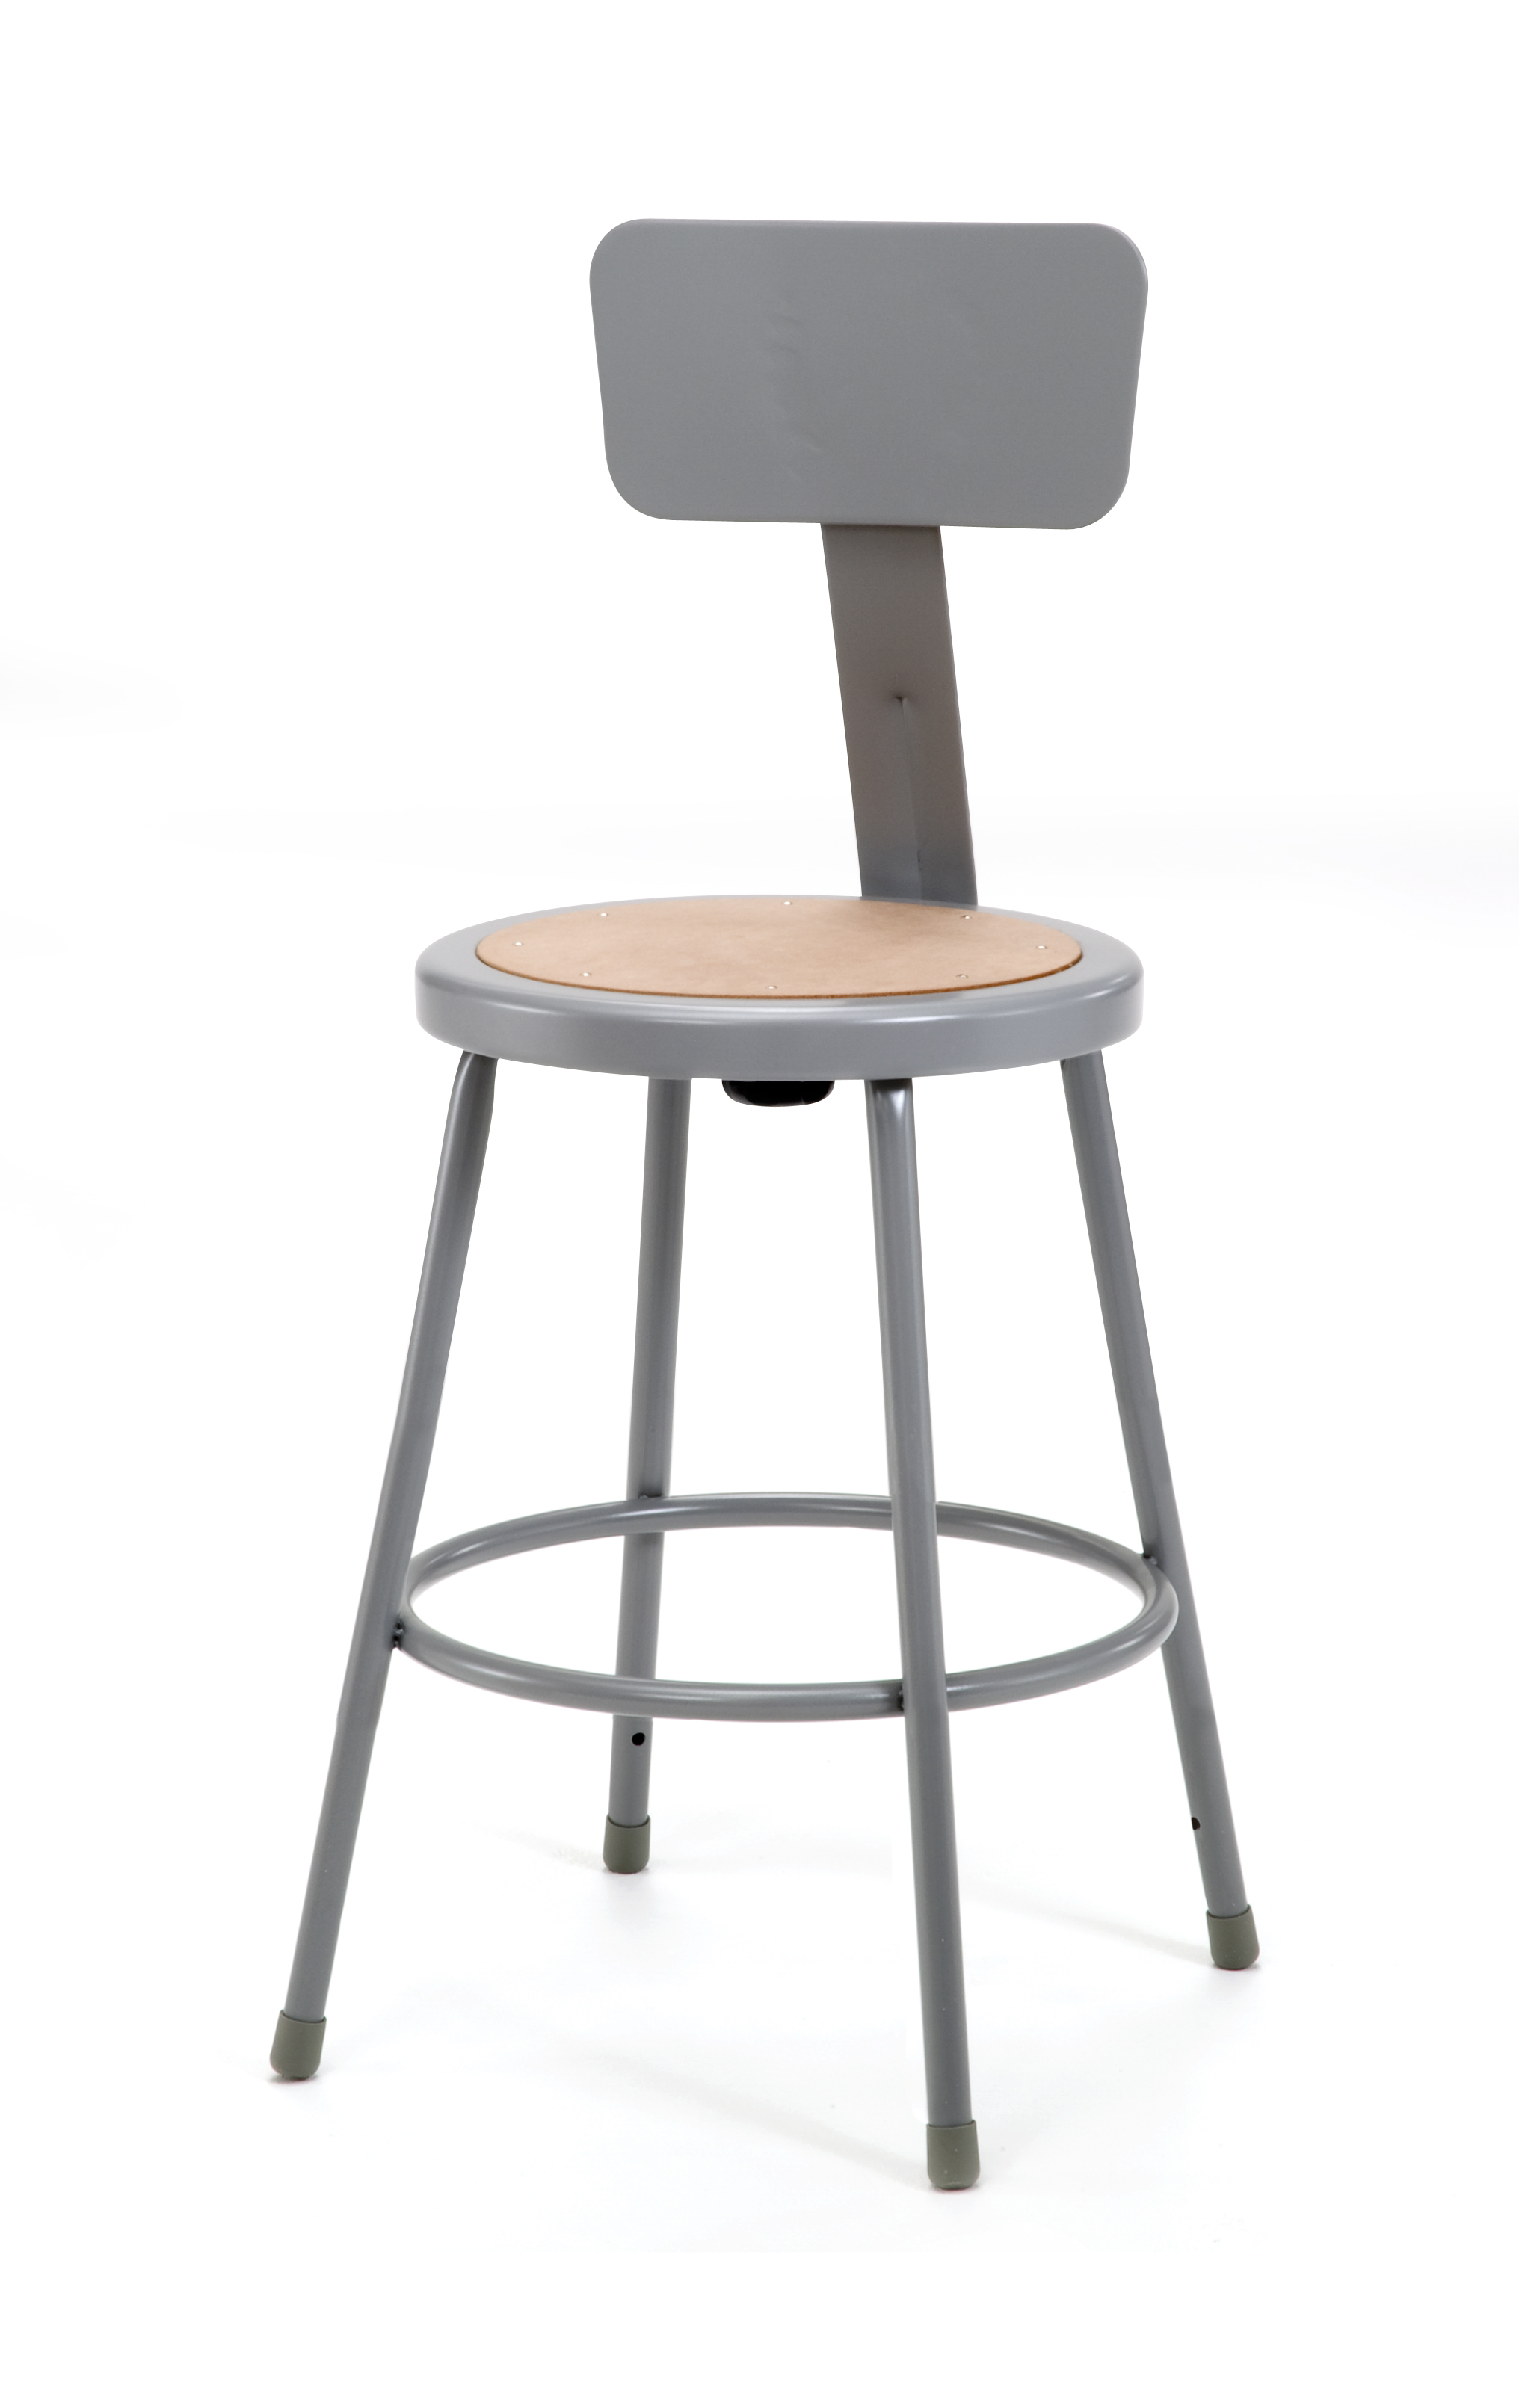 "4 PACK NPS Lab Stool with Backrest - 24"" Seat Height"